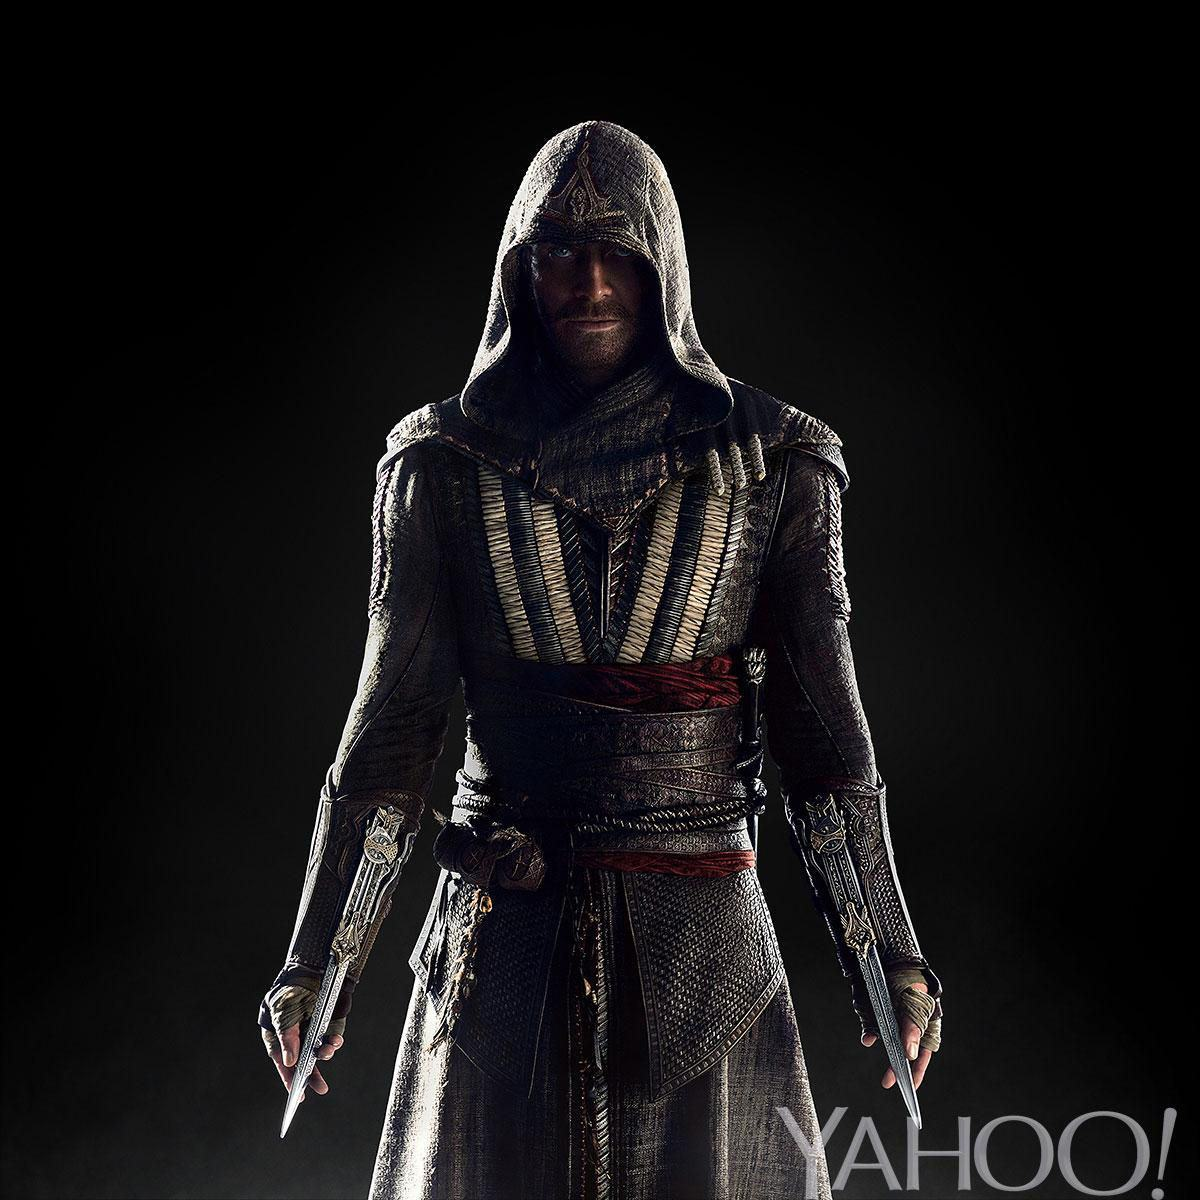 UNILAD assassinscreed fassbender.013 New Images Emerge From Set Of Assassins Creed Movie